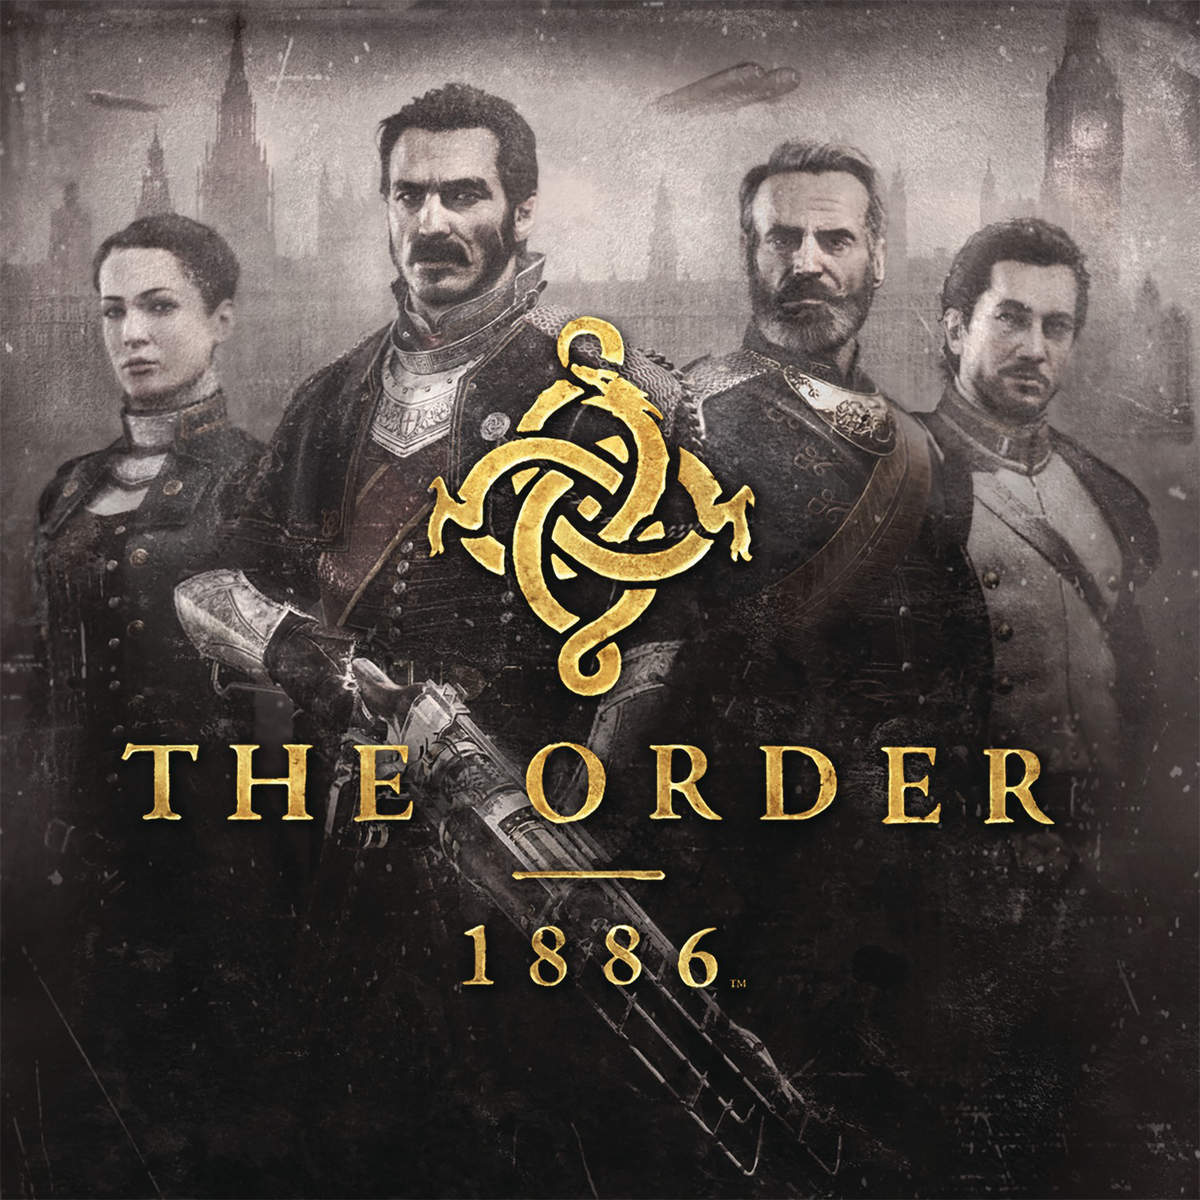 The_Order-1886_Video_Game_Soundtrack__image1200x1200.jpeg